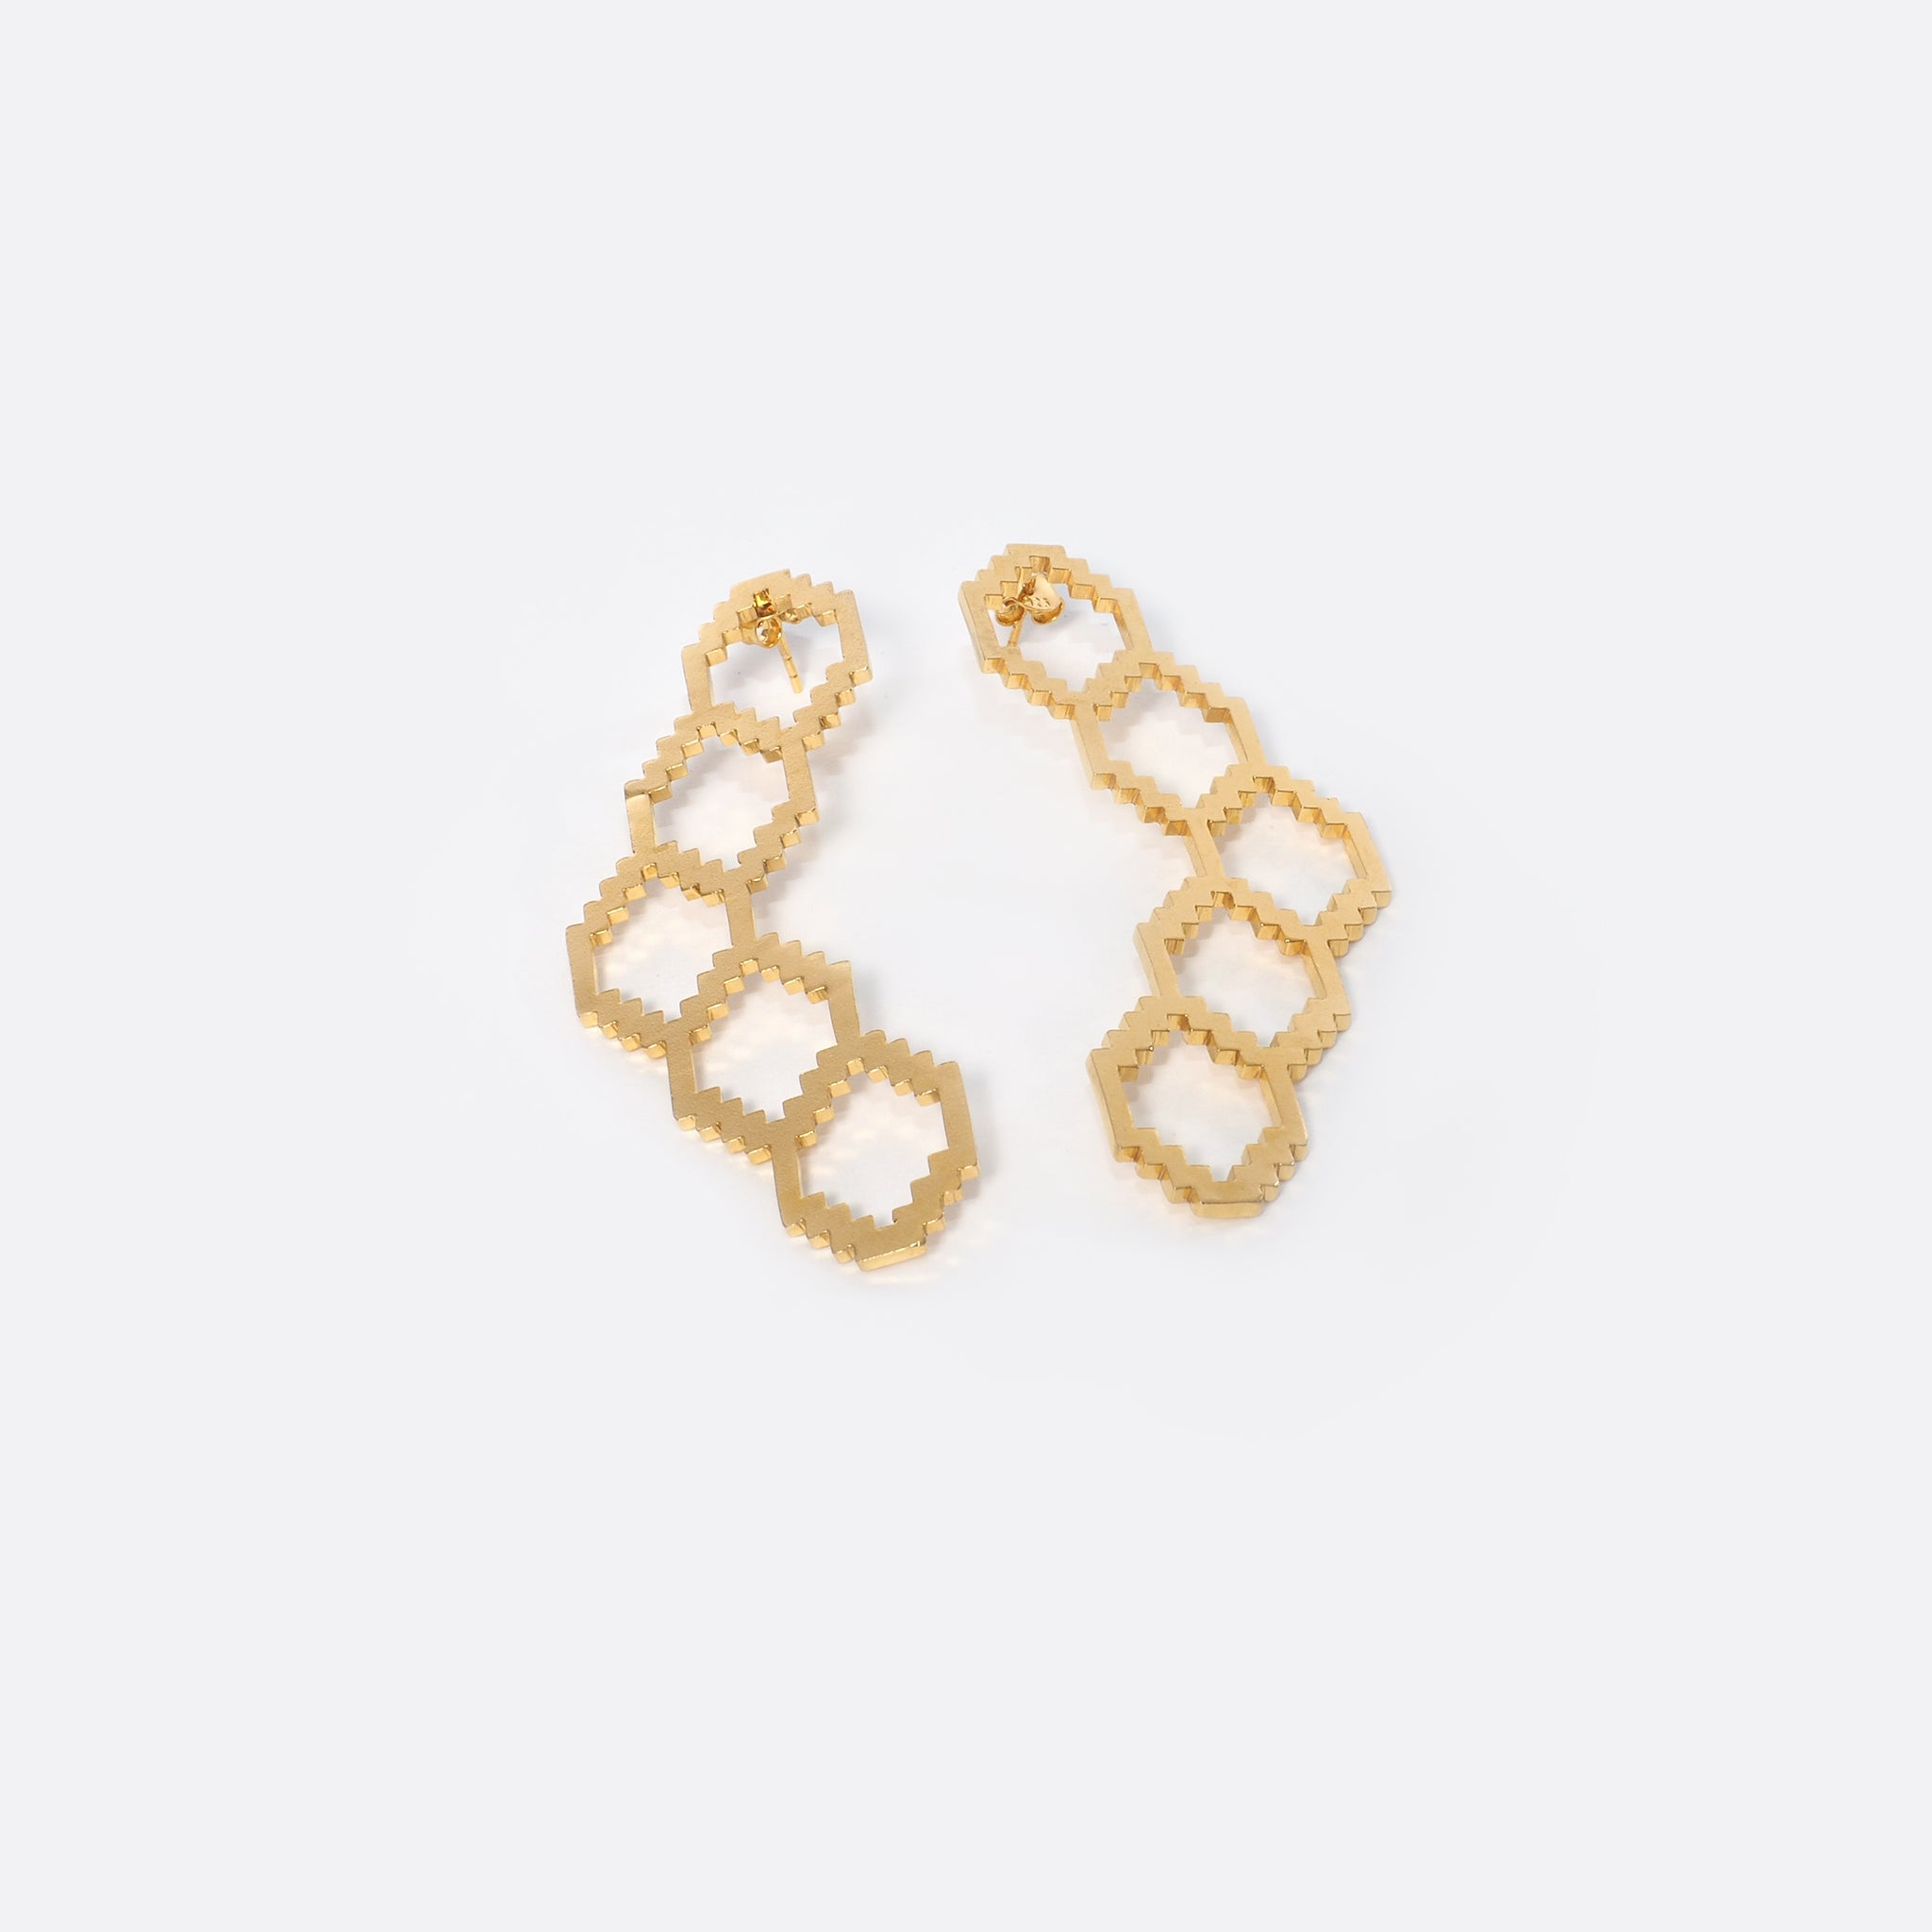 Homage To Dhaka N°1 – Gold- Plated Earrings